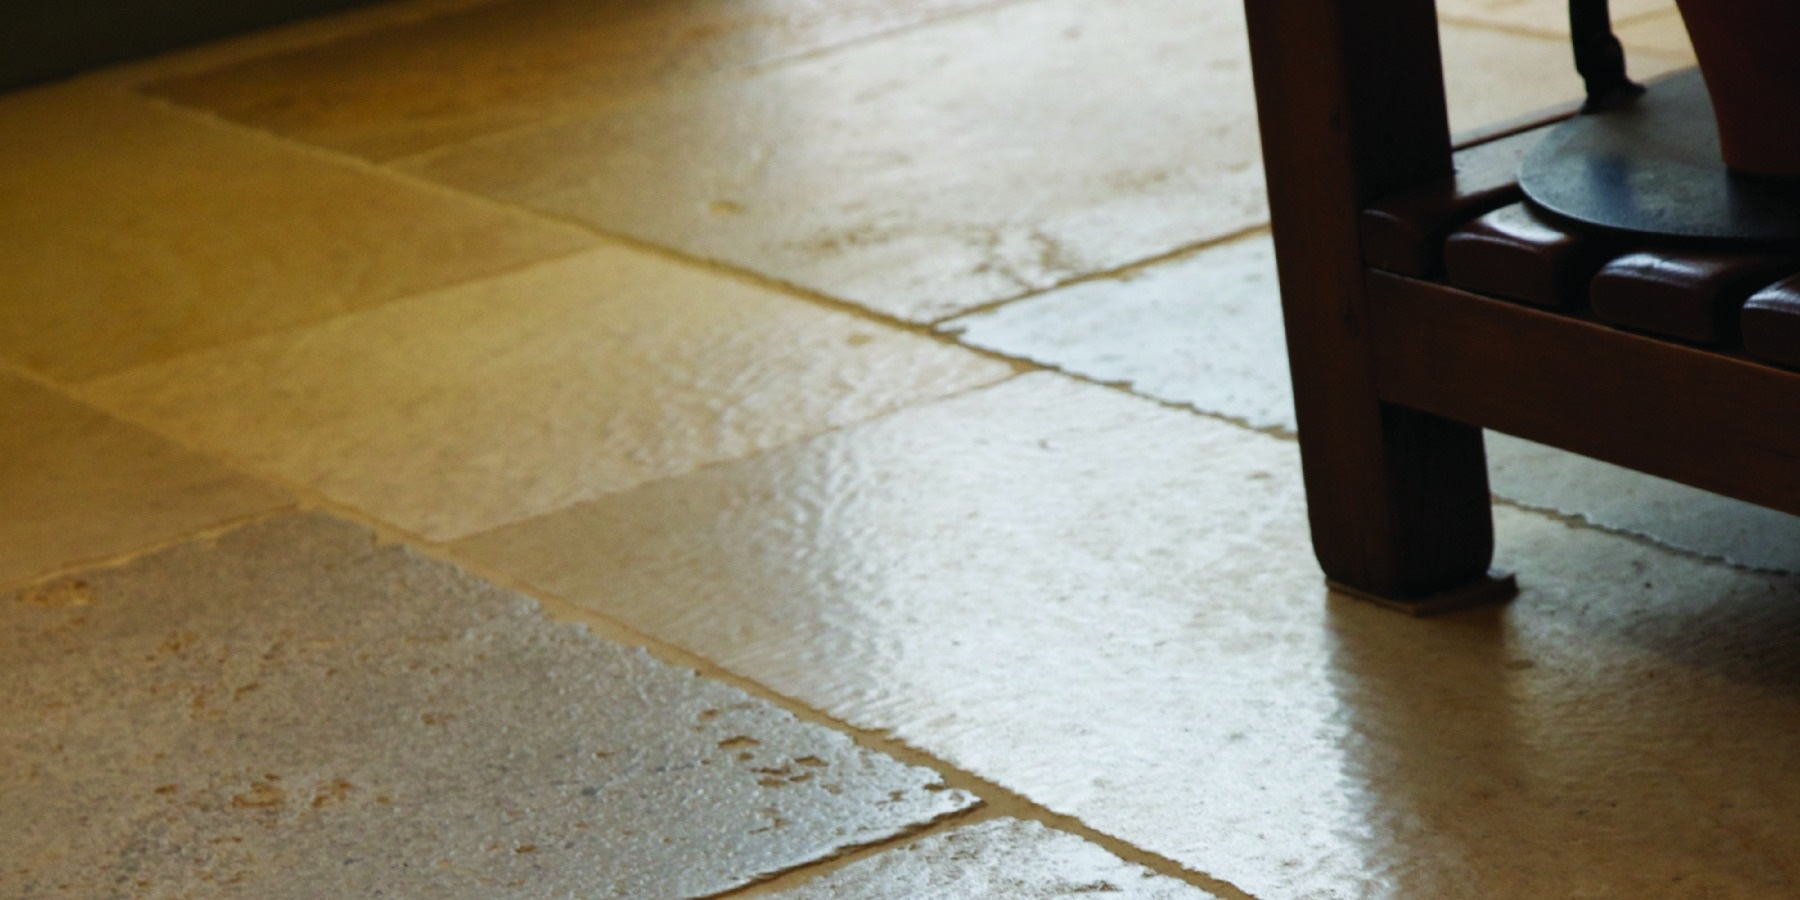 Ca'Pietra Stone Flooring - Burlanes are official suppliers of beautiful Ca'Pietra tiles and stone flooring.